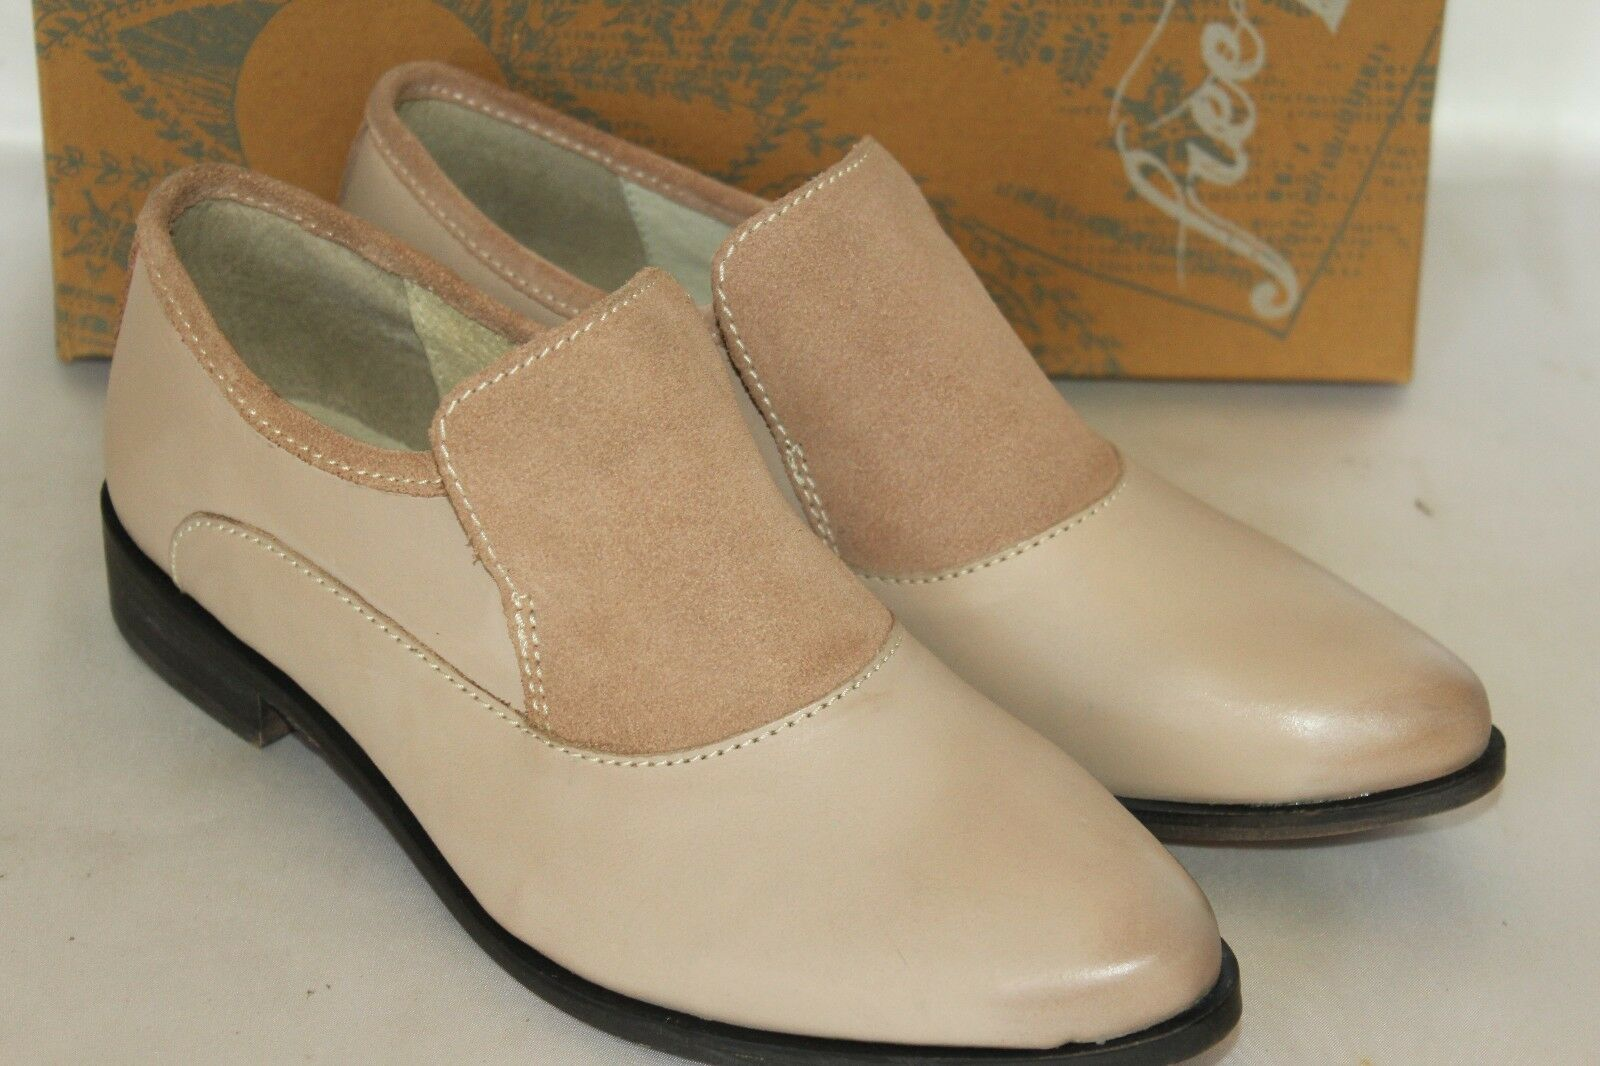 NEU  Anthropologie FREE PEOPLE Natural Leder & Nubuck Suede BRADY Loafer EU39